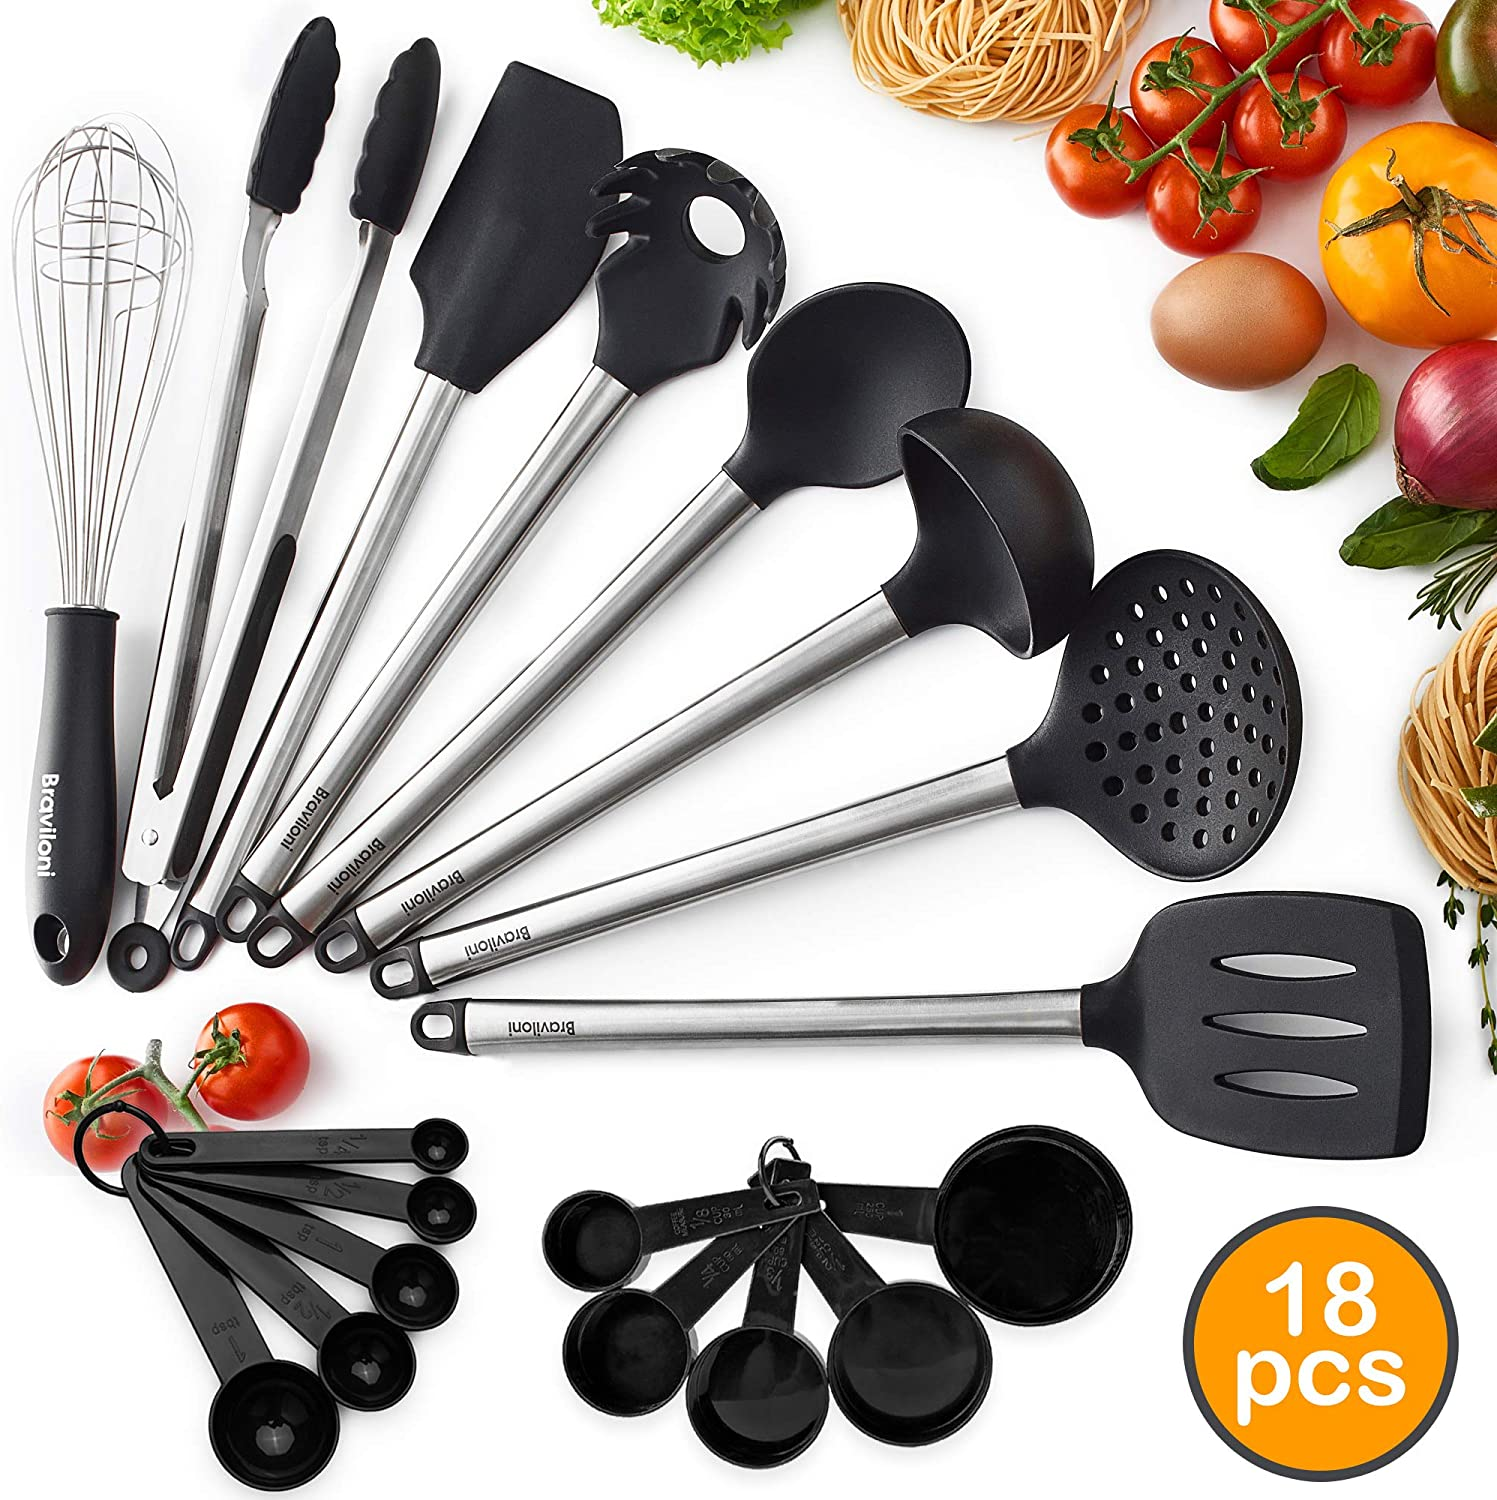 Premium Kitchen Utensil Set for Cooking - 18-Piece Spatulas & Spoons for Nonstick Cookware - Heat Resistant, Non-Scratch, Dishwasher Safe Silicon Stainless Steel Tools - Measuring Cups, Whisk, Tongs